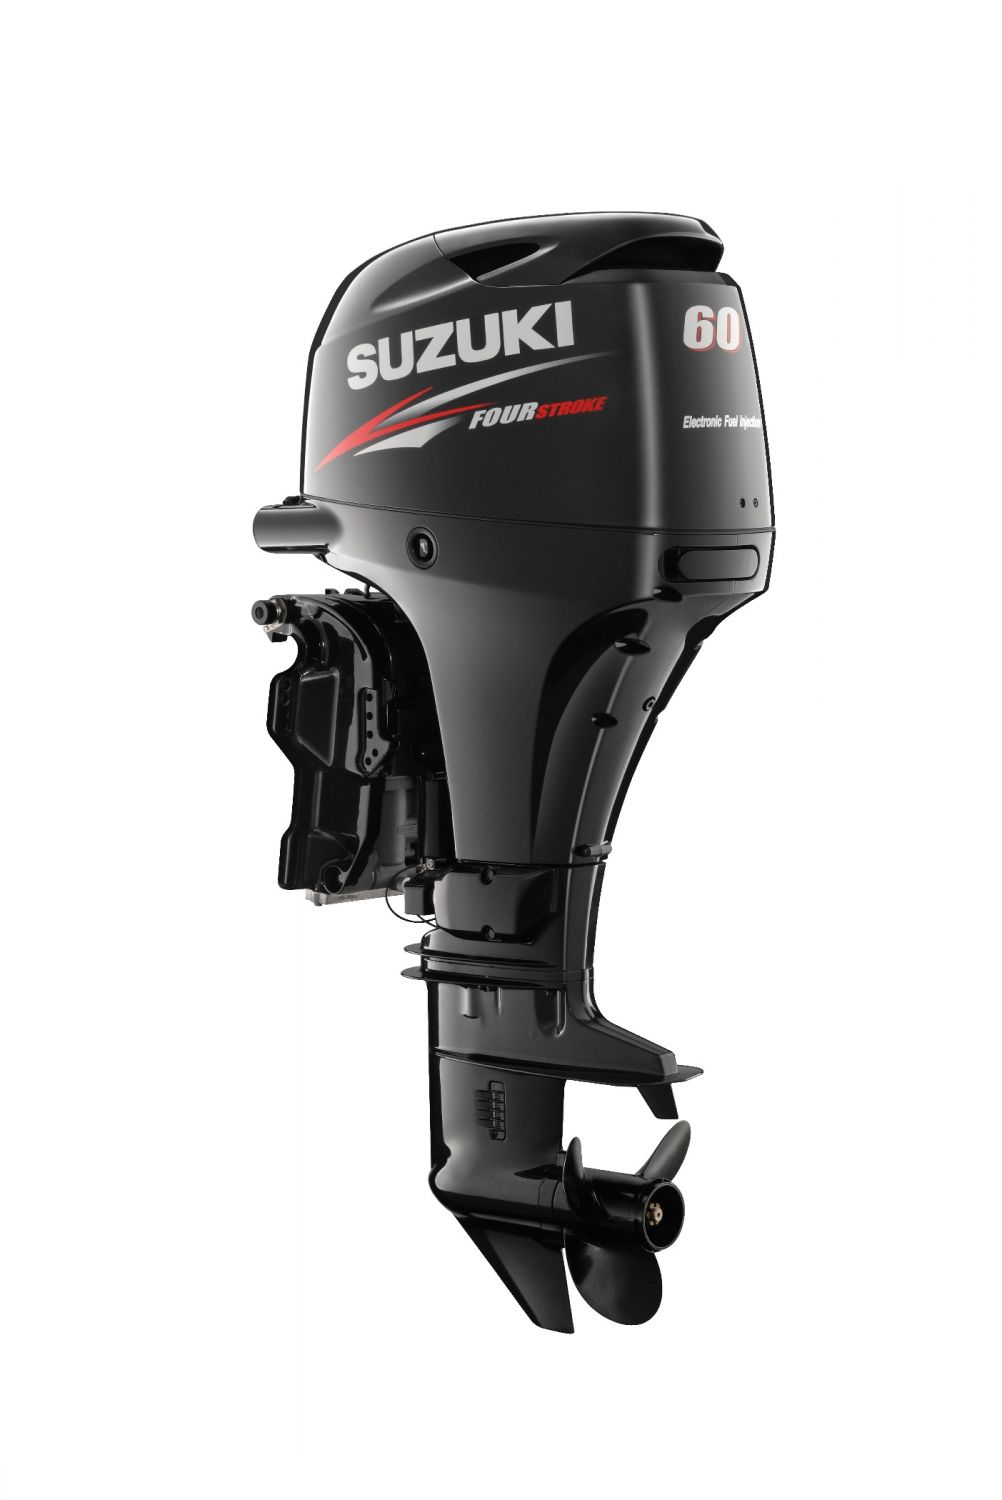 Suzuki DF60A Four stroke outboard engine